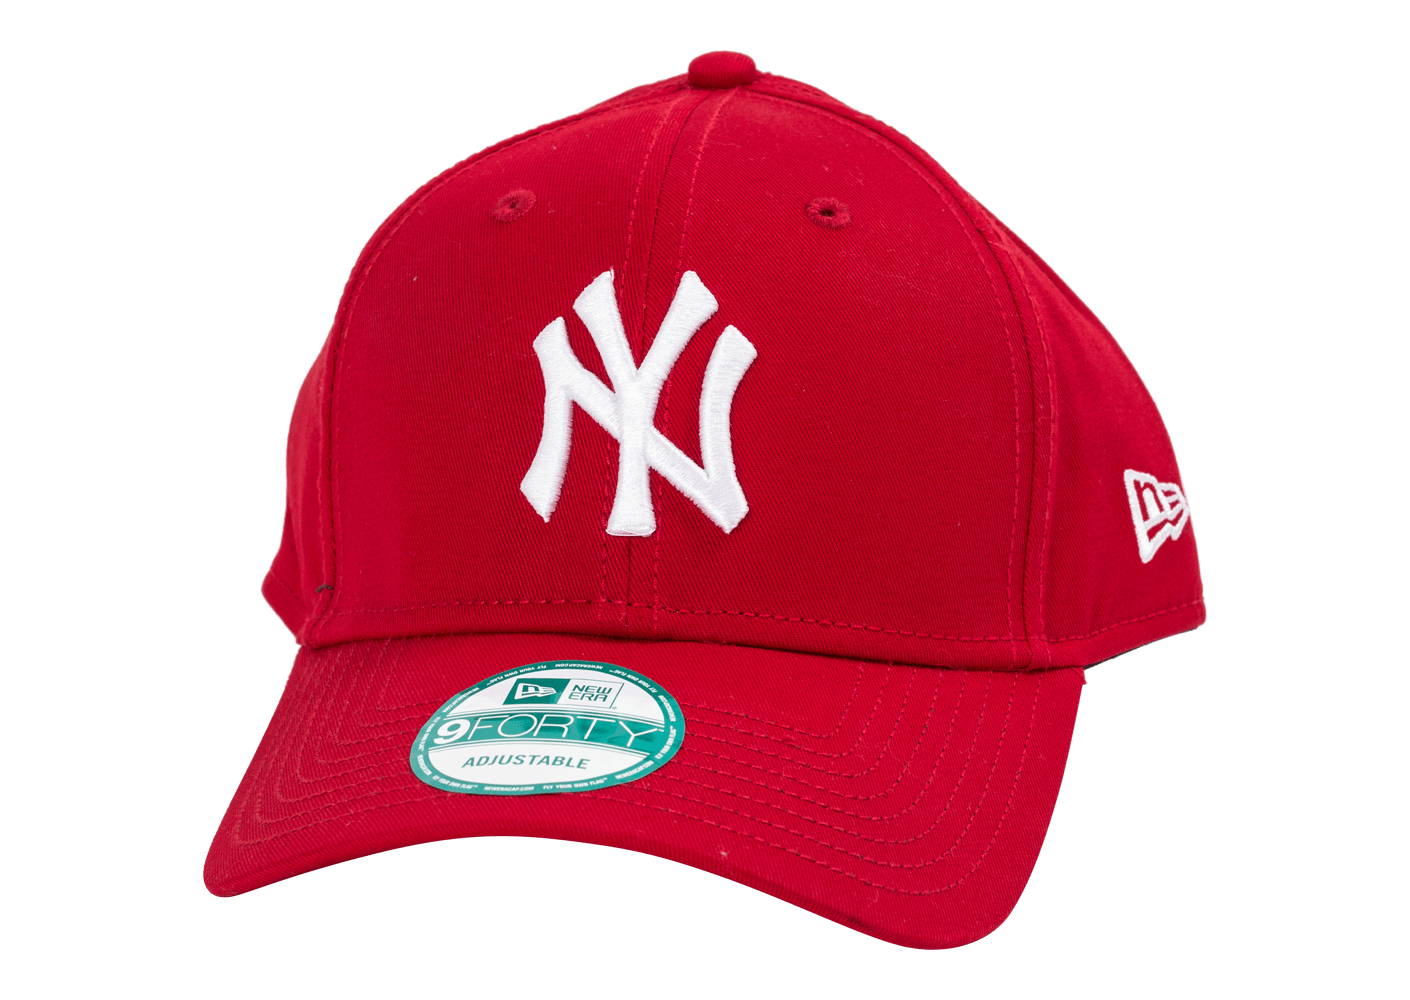 new era casquette 9 40 mlb the league new york yankees rouge casquettes chausport. Black Bedroom Furniture Sets. Home Design Ideas